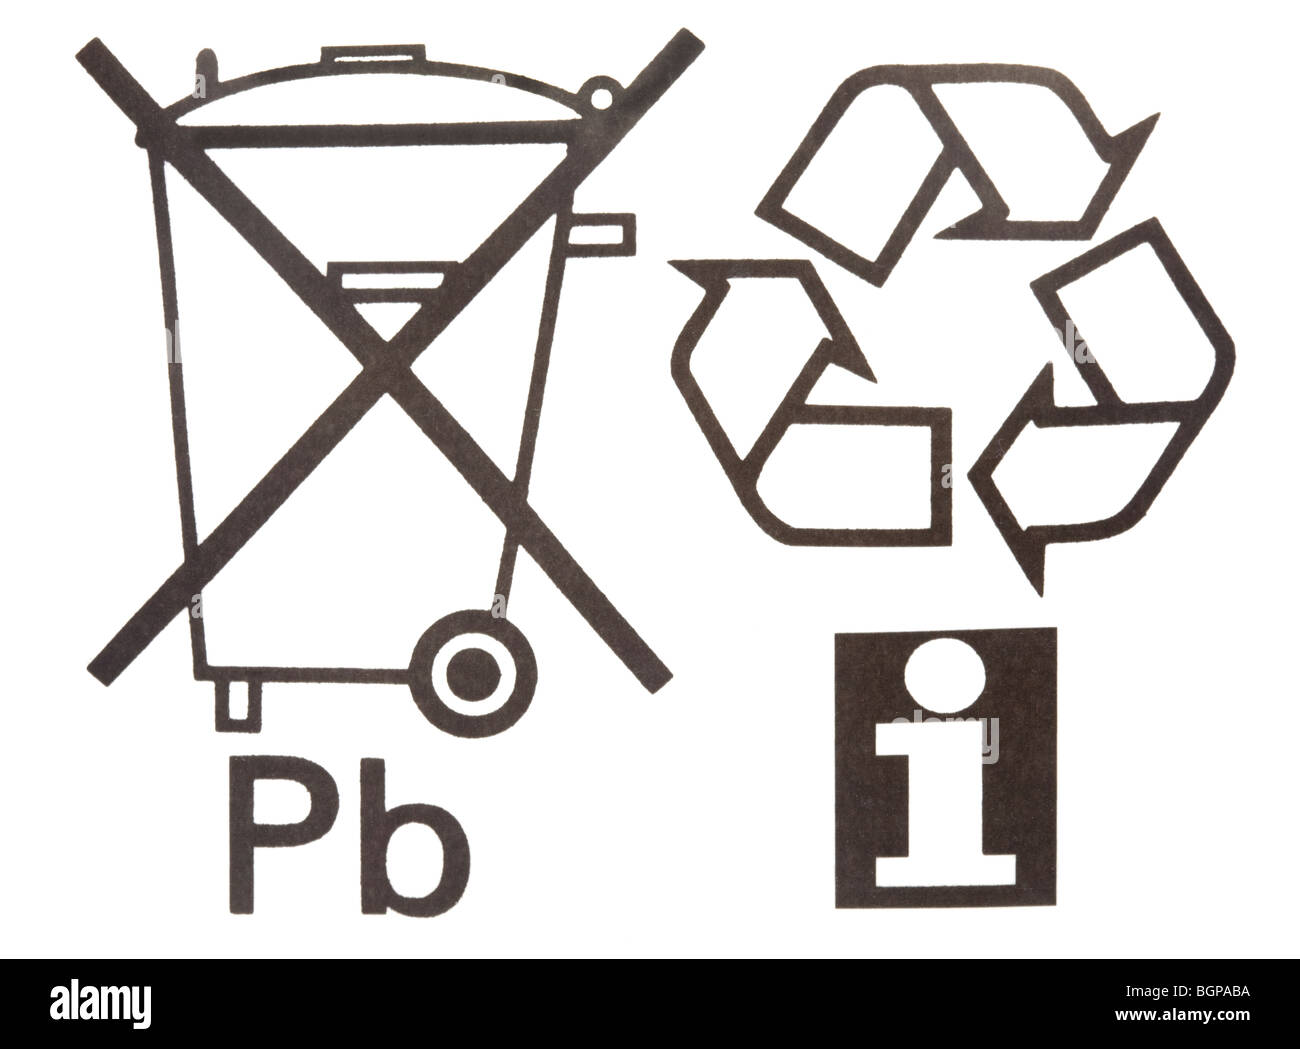 Packaging Symbols Stock Photos Packaging Symbols Stock Images Alamy